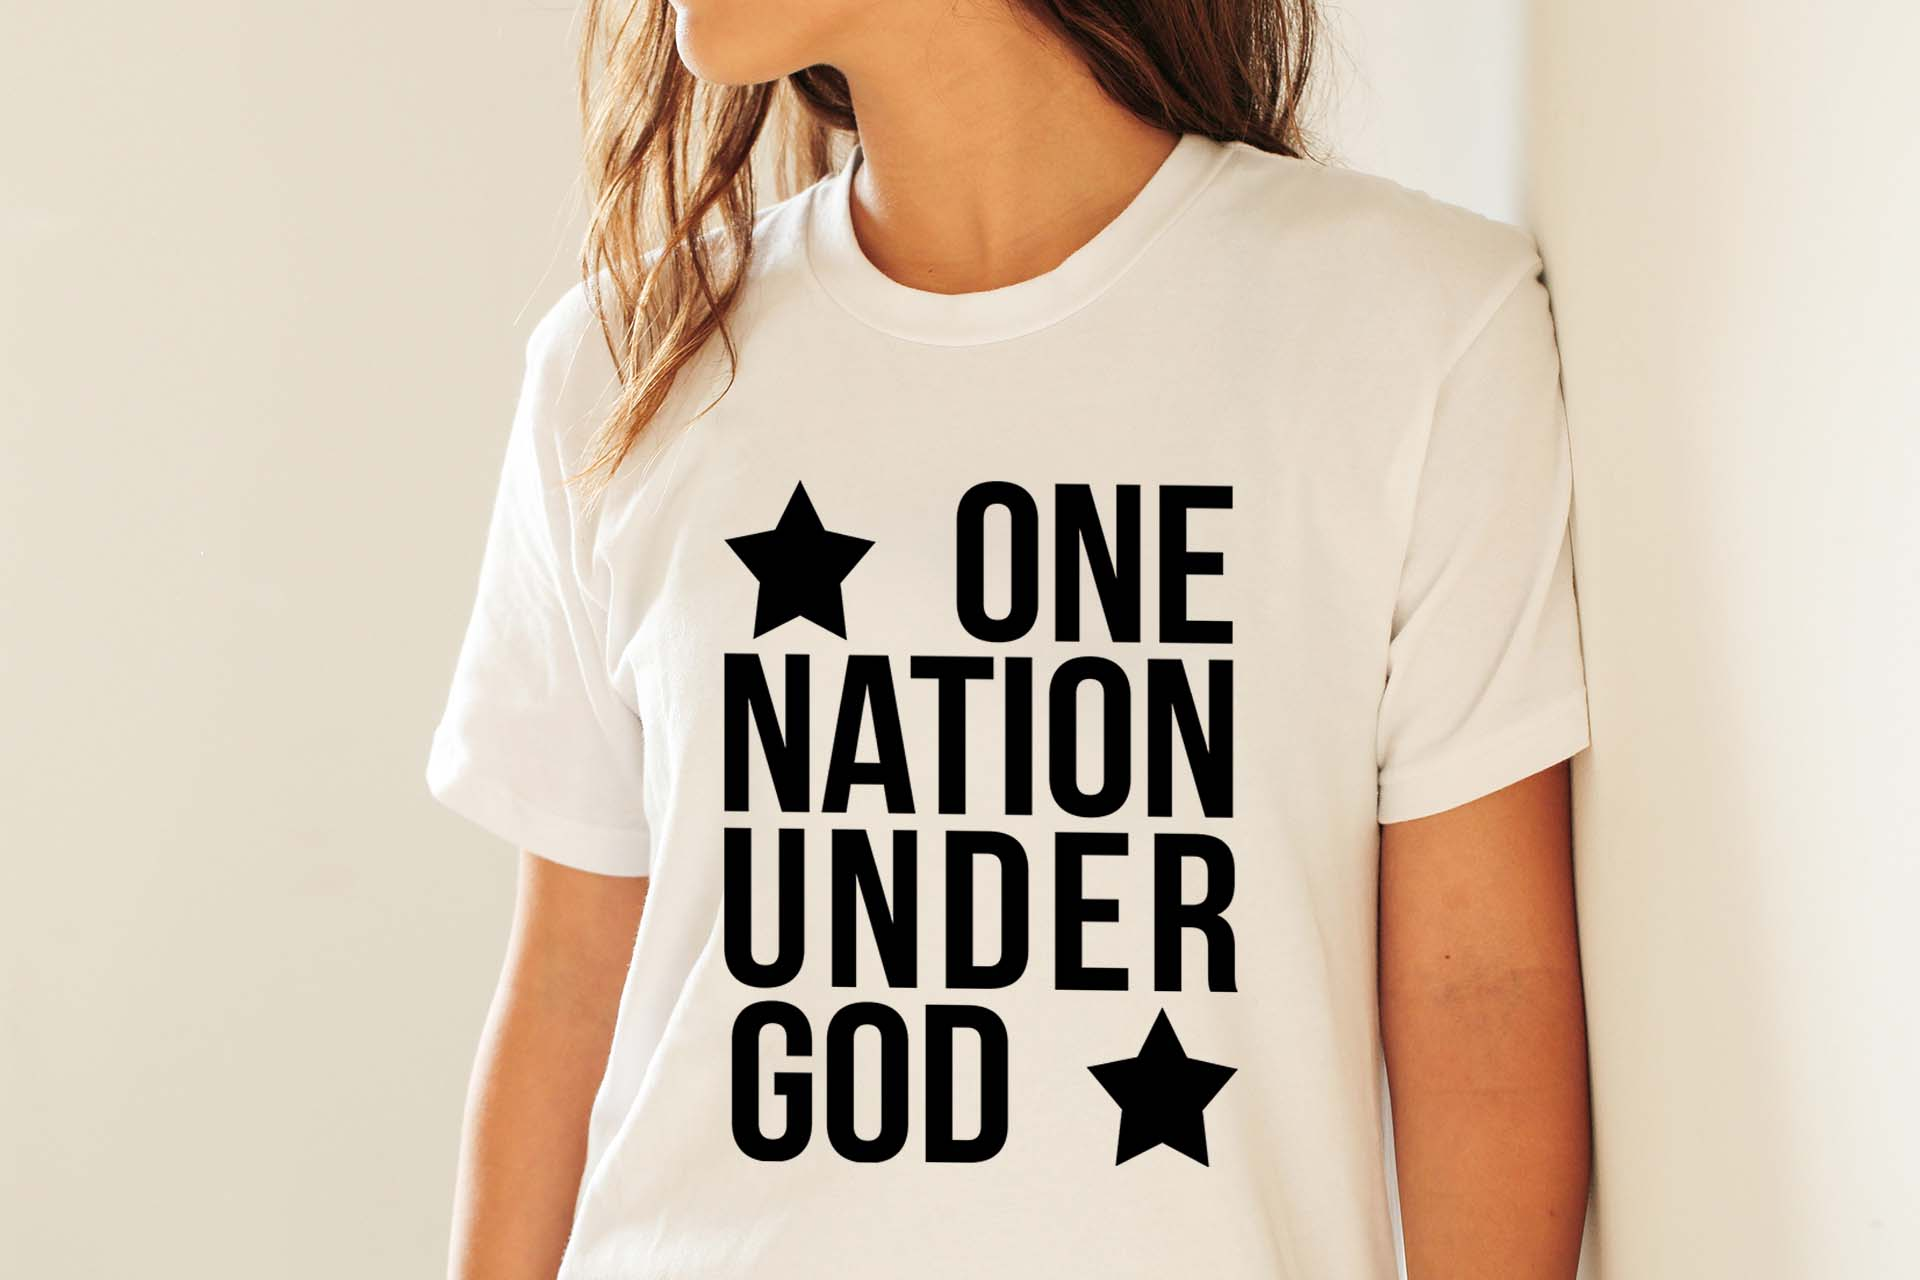 One nation under God SVG PNG EPS DXF 4th of July svg Patriotic svg file example image 4